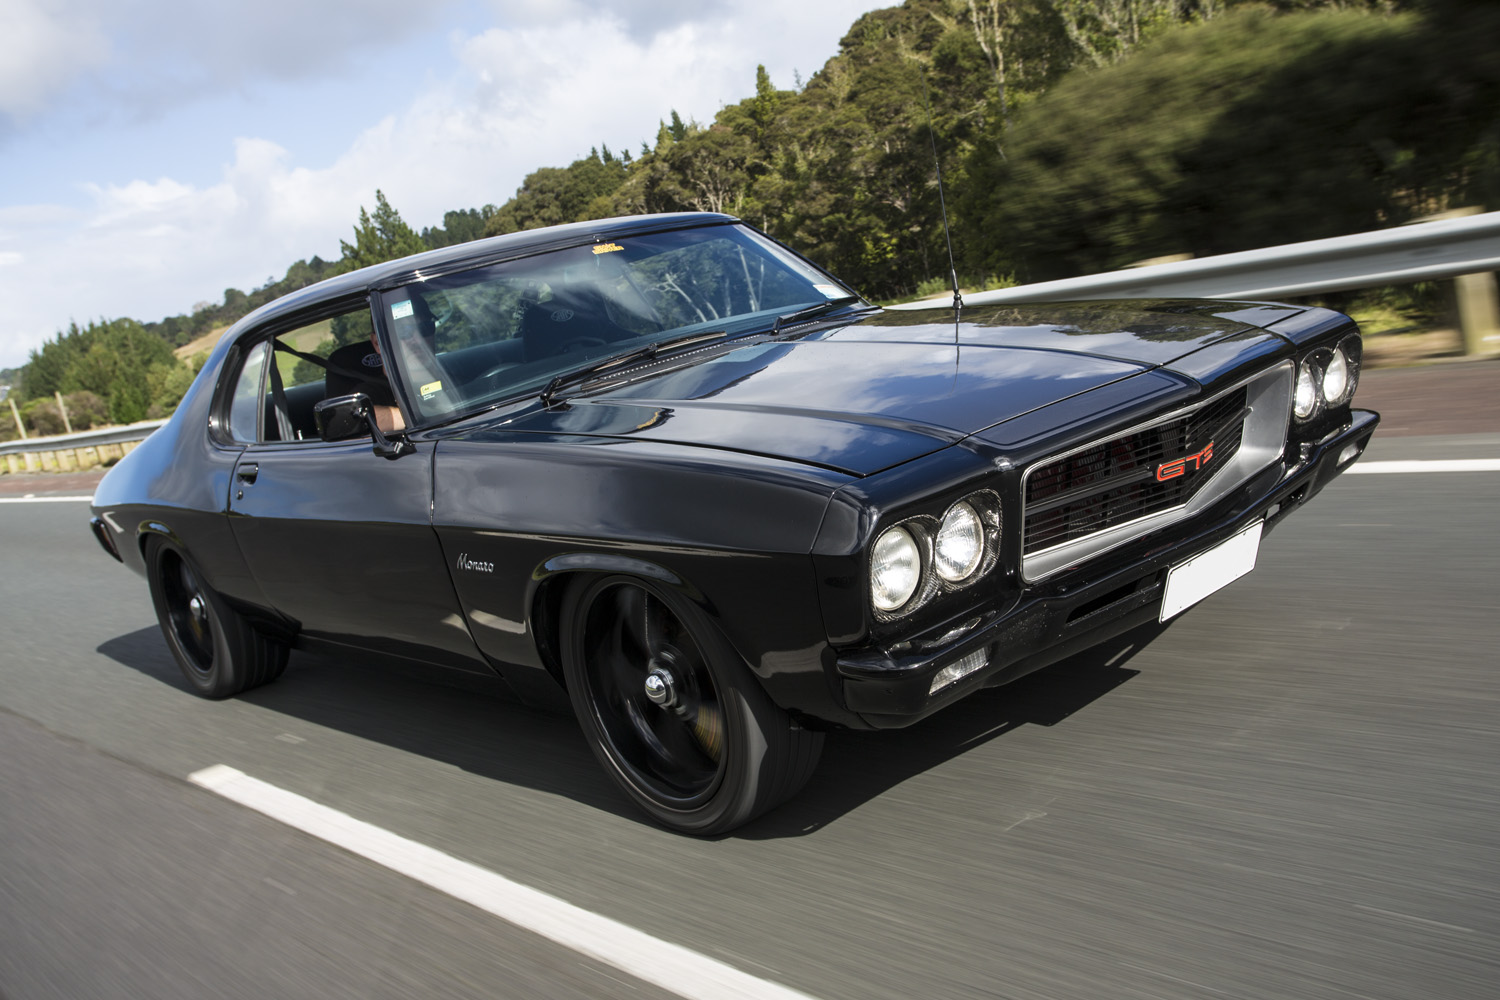 HQ heirloom: the Holden Monaro that is part of the family ...